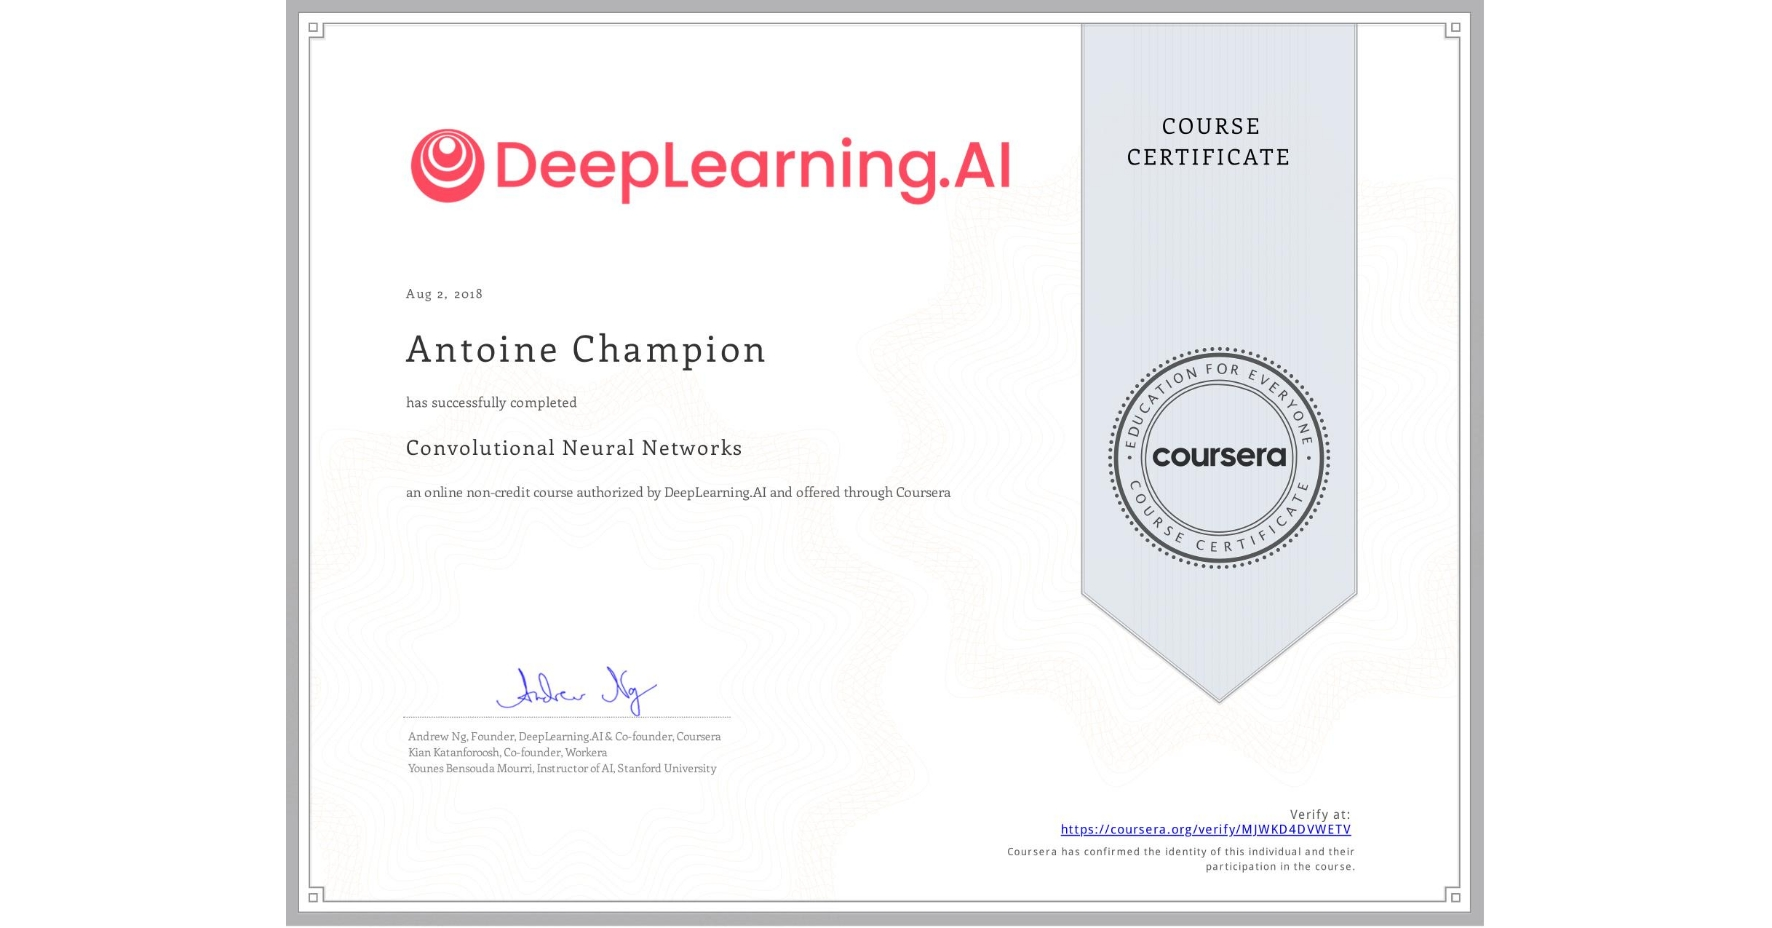 View certificate for Antoine Champion, Convolutional Neural Networks, an online non-credit course authorized by DeepLearning.AI and offered through Coursera